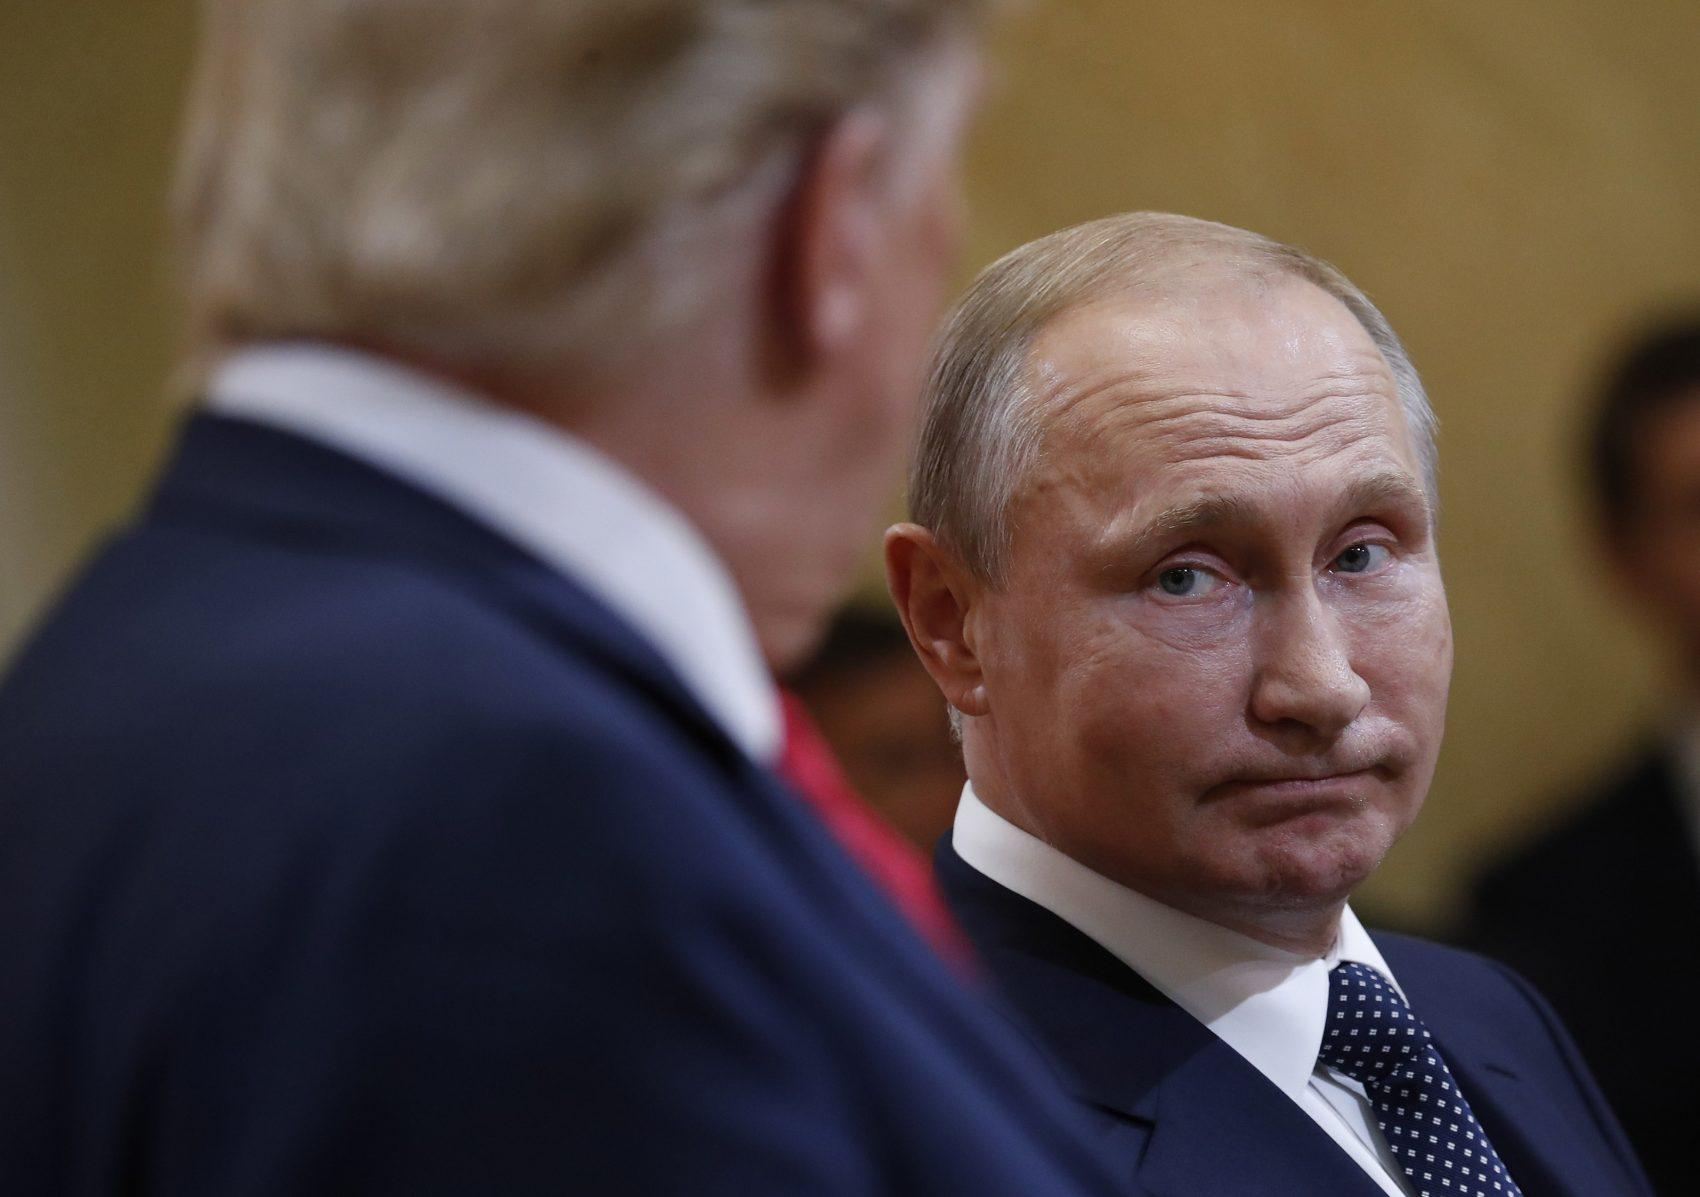 Putin summit: USA president reverses remarks on Russian meddling